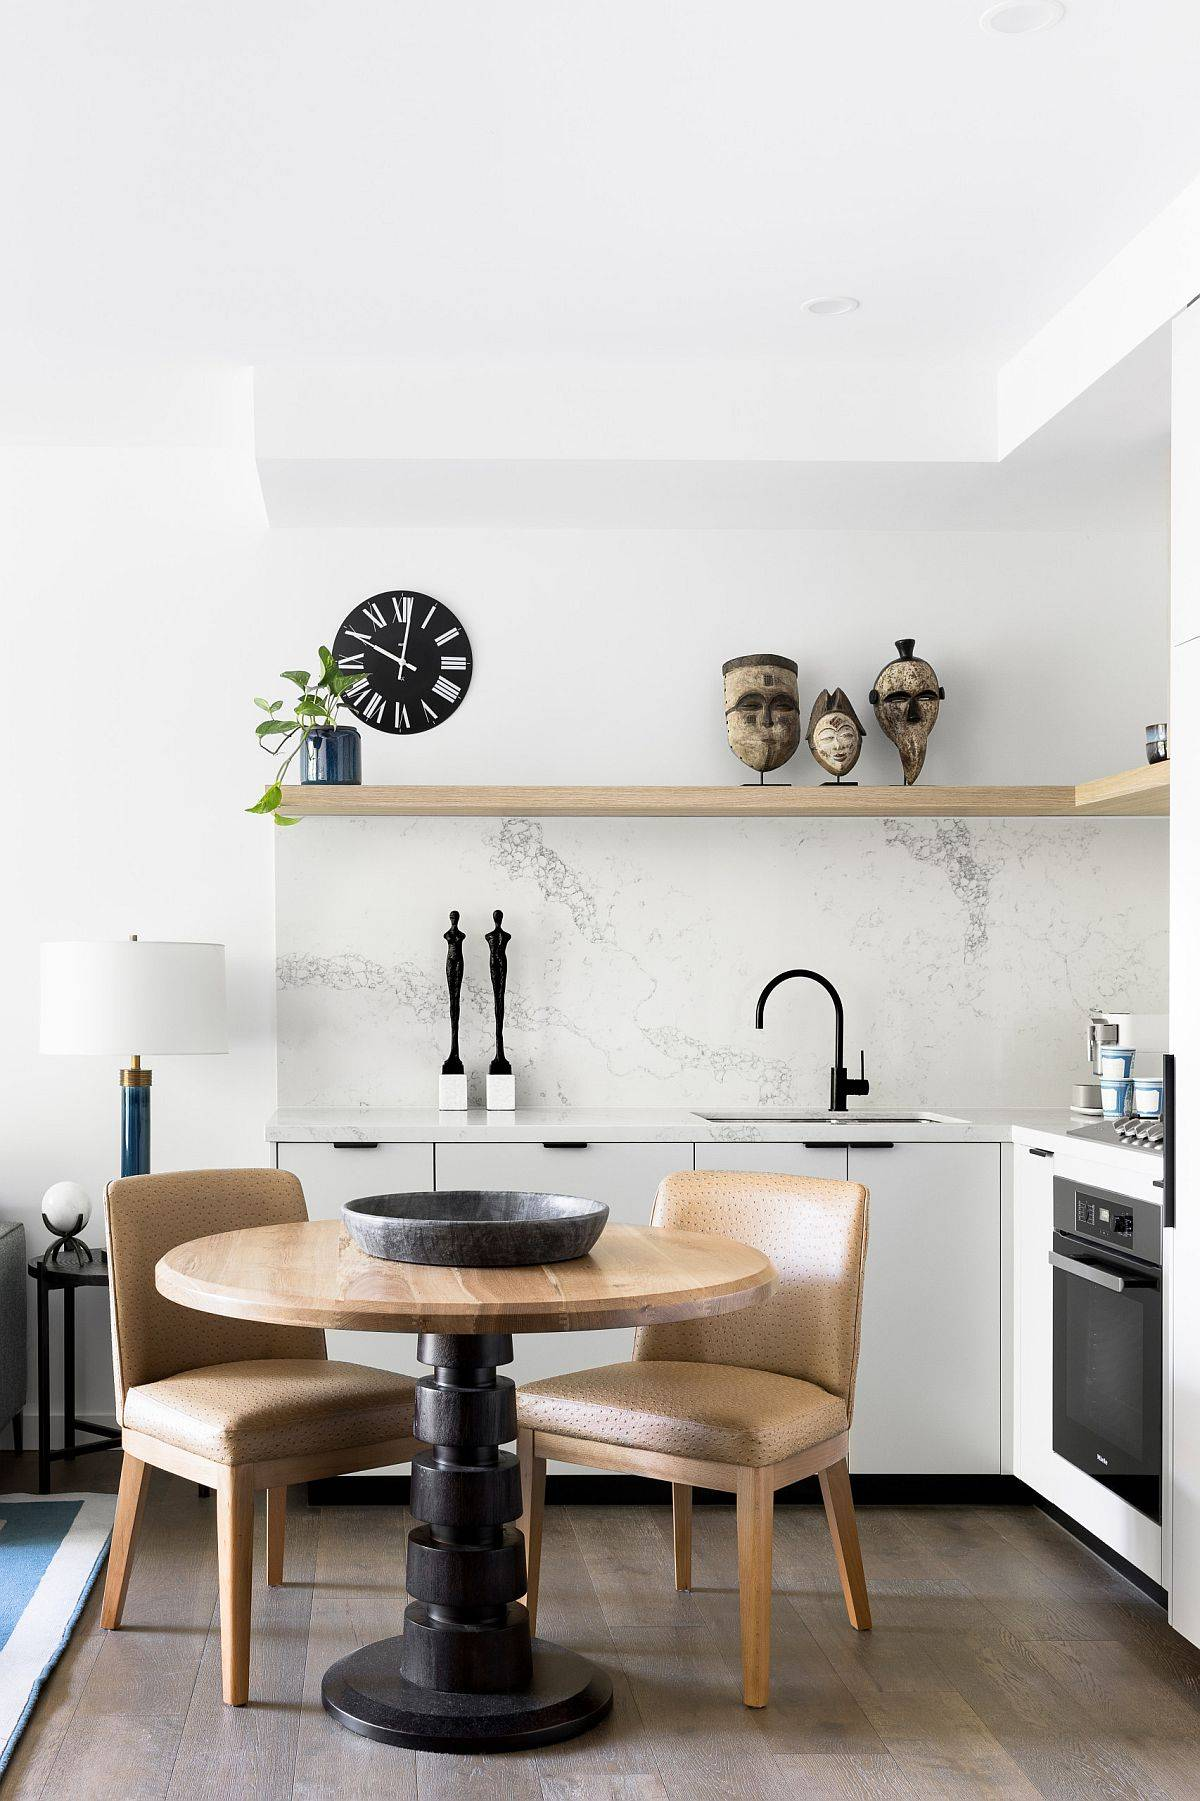 White-contemporary-kitchen-with-marble-backsplash-and-a-floaing-wooden-shelf-89893